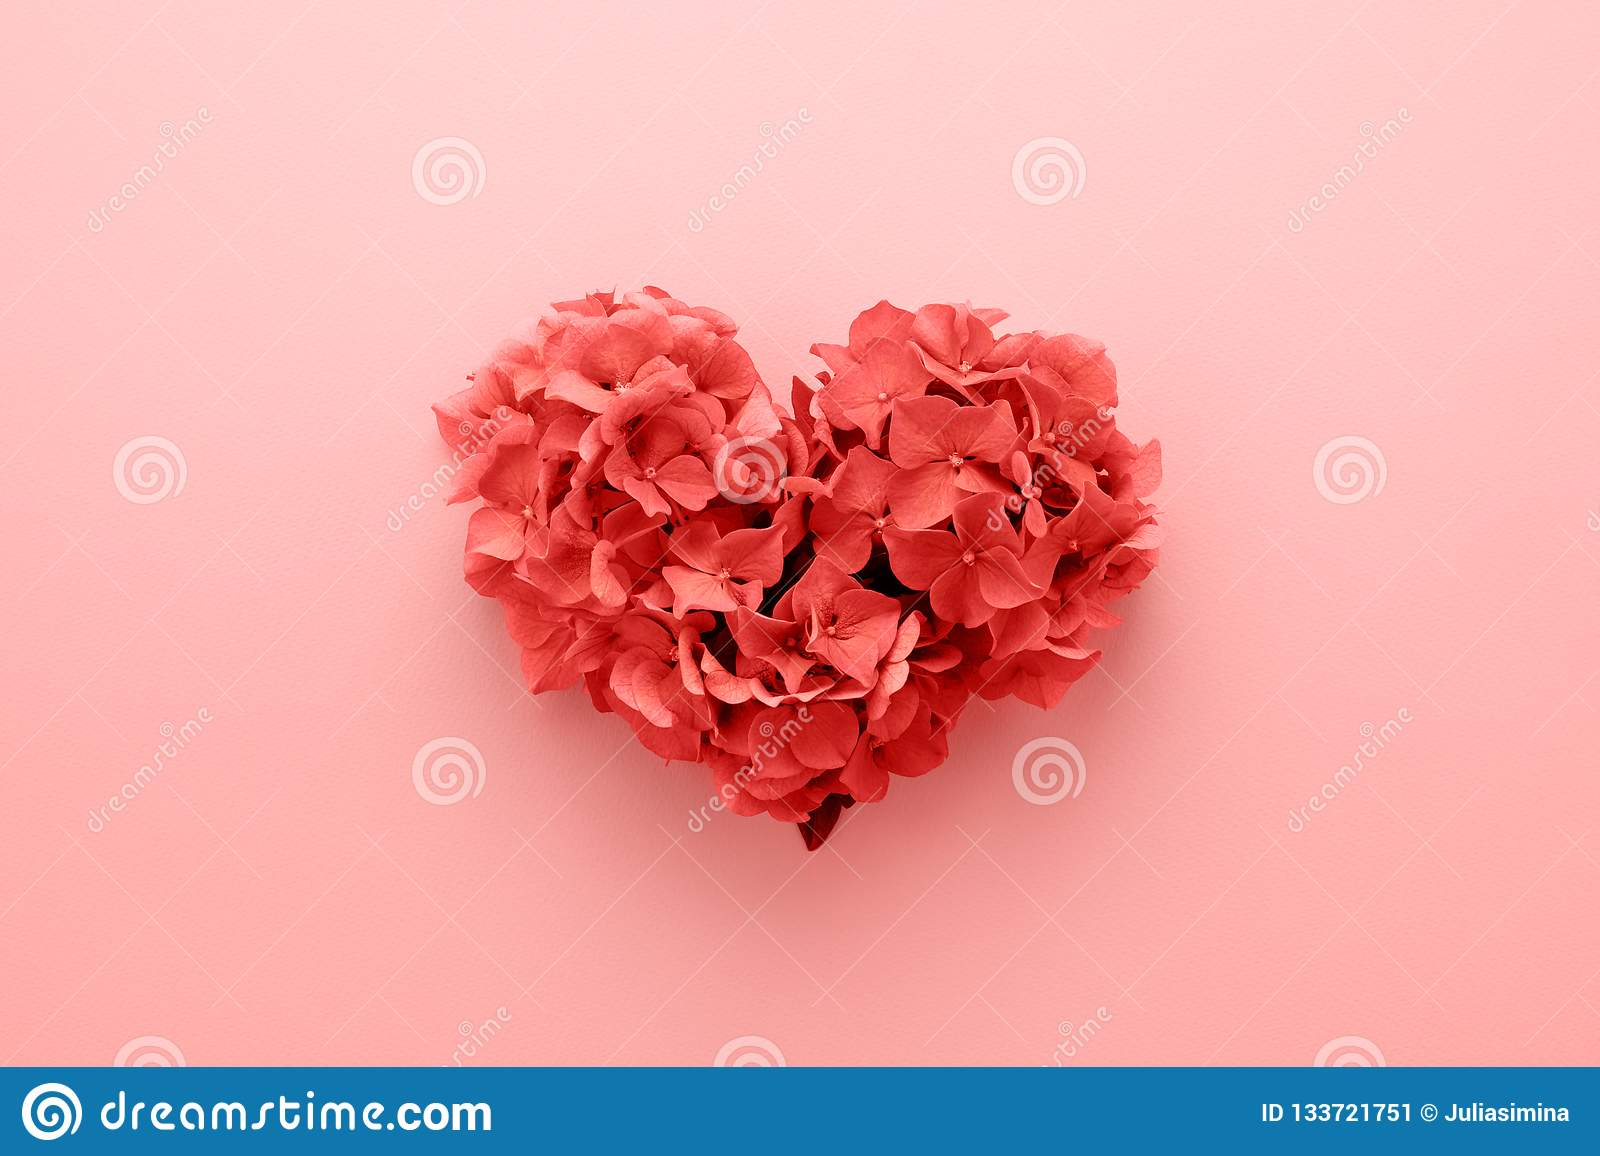 Living Coral color Heart shape made of flowers Valentine's Day